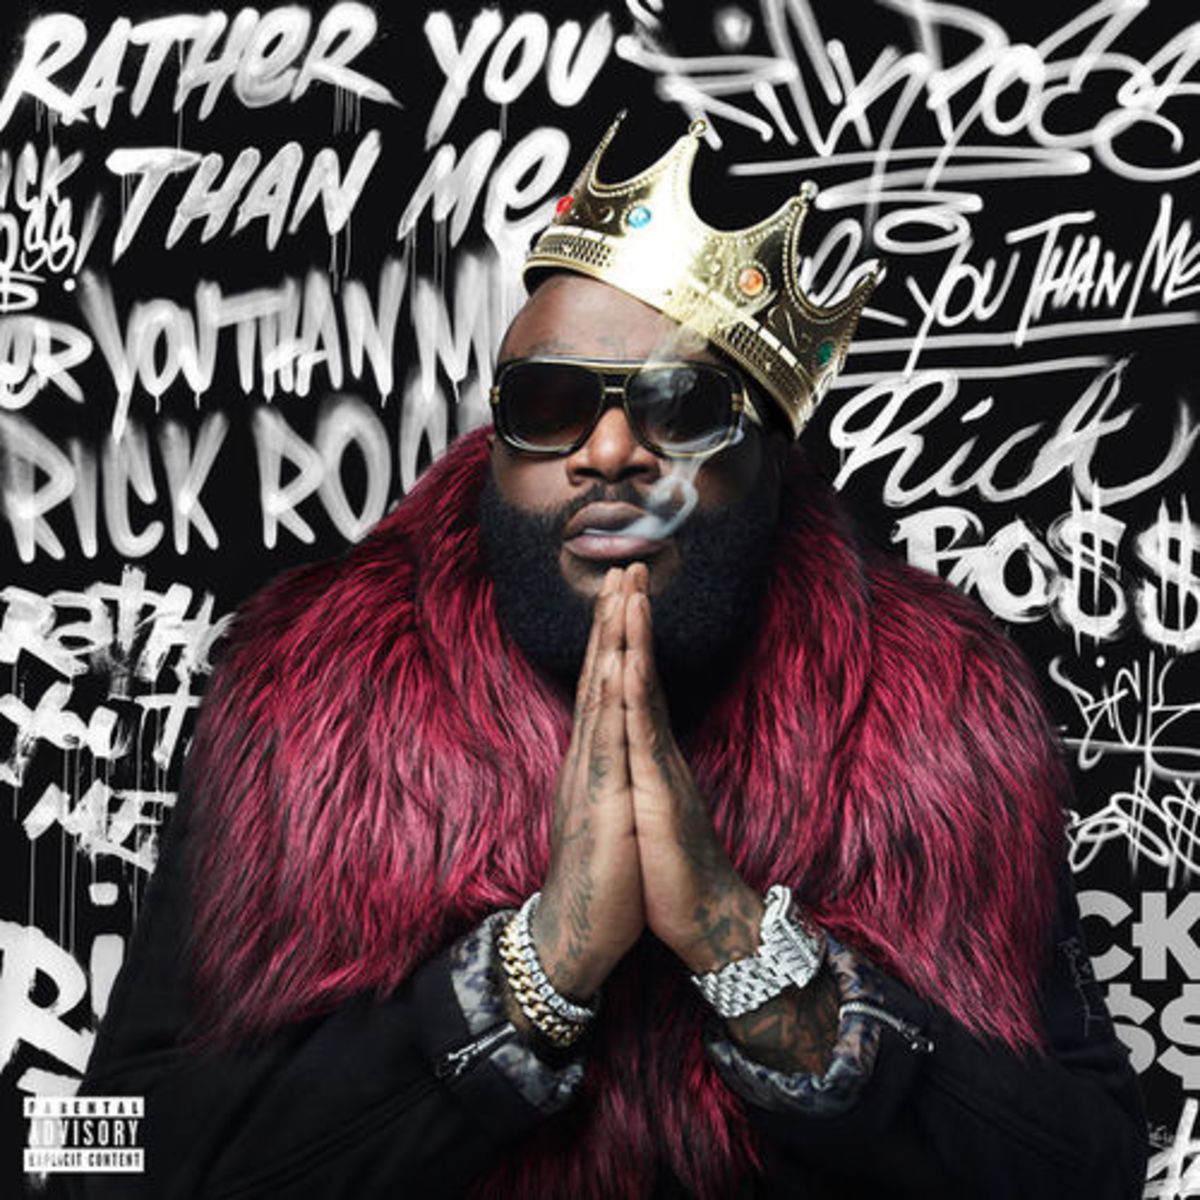 rick-ross-rather-you-than-me.jpg